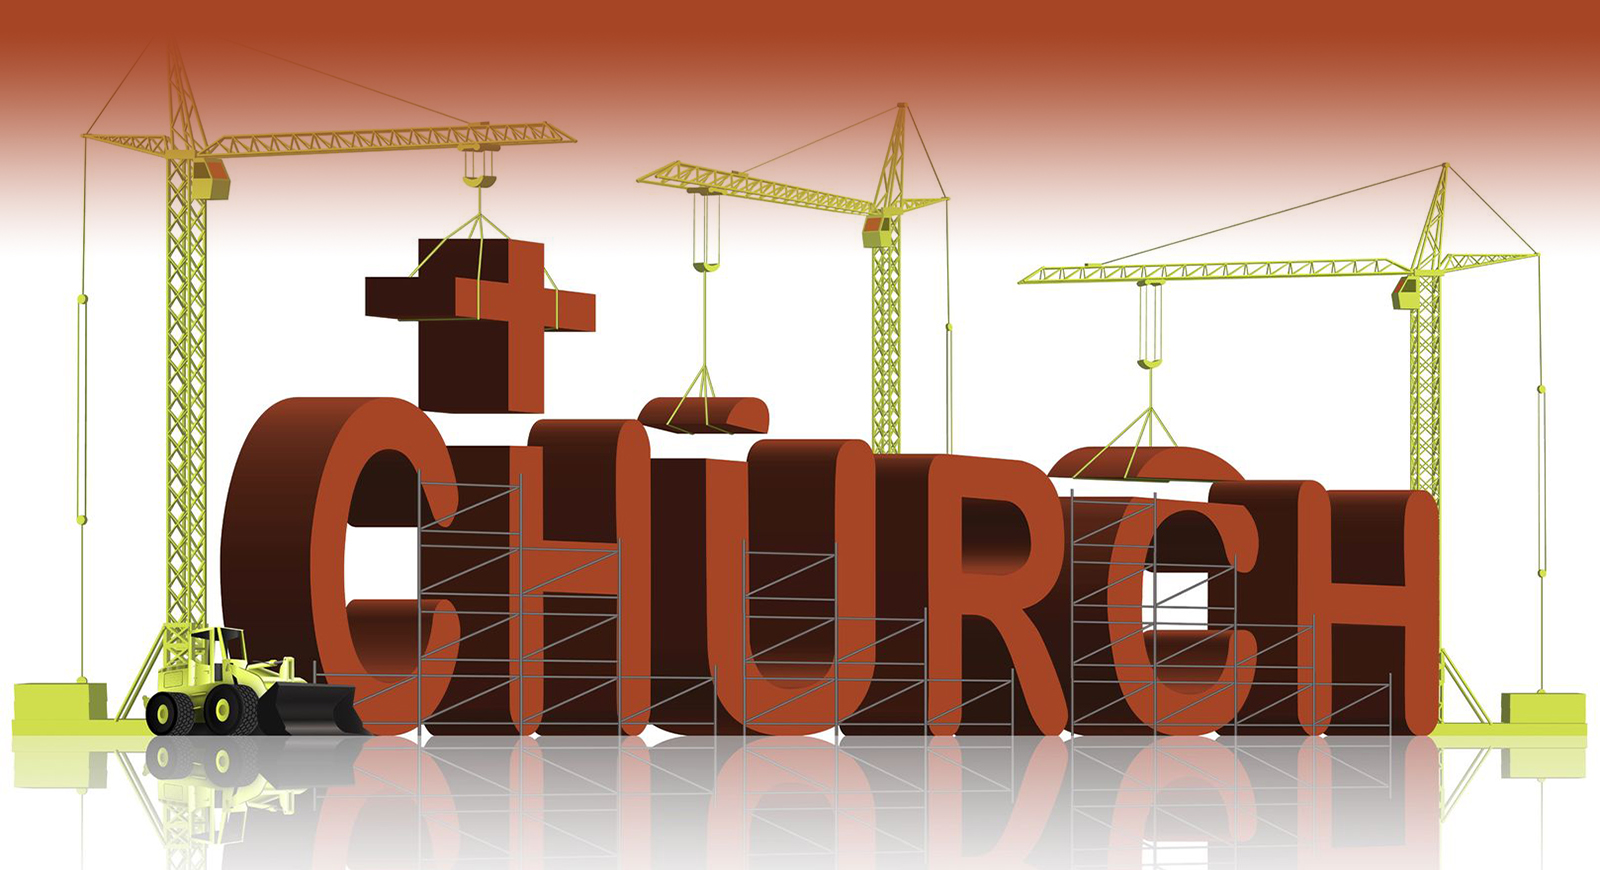 6542753 – building a church, tower cranes constructing 3d word